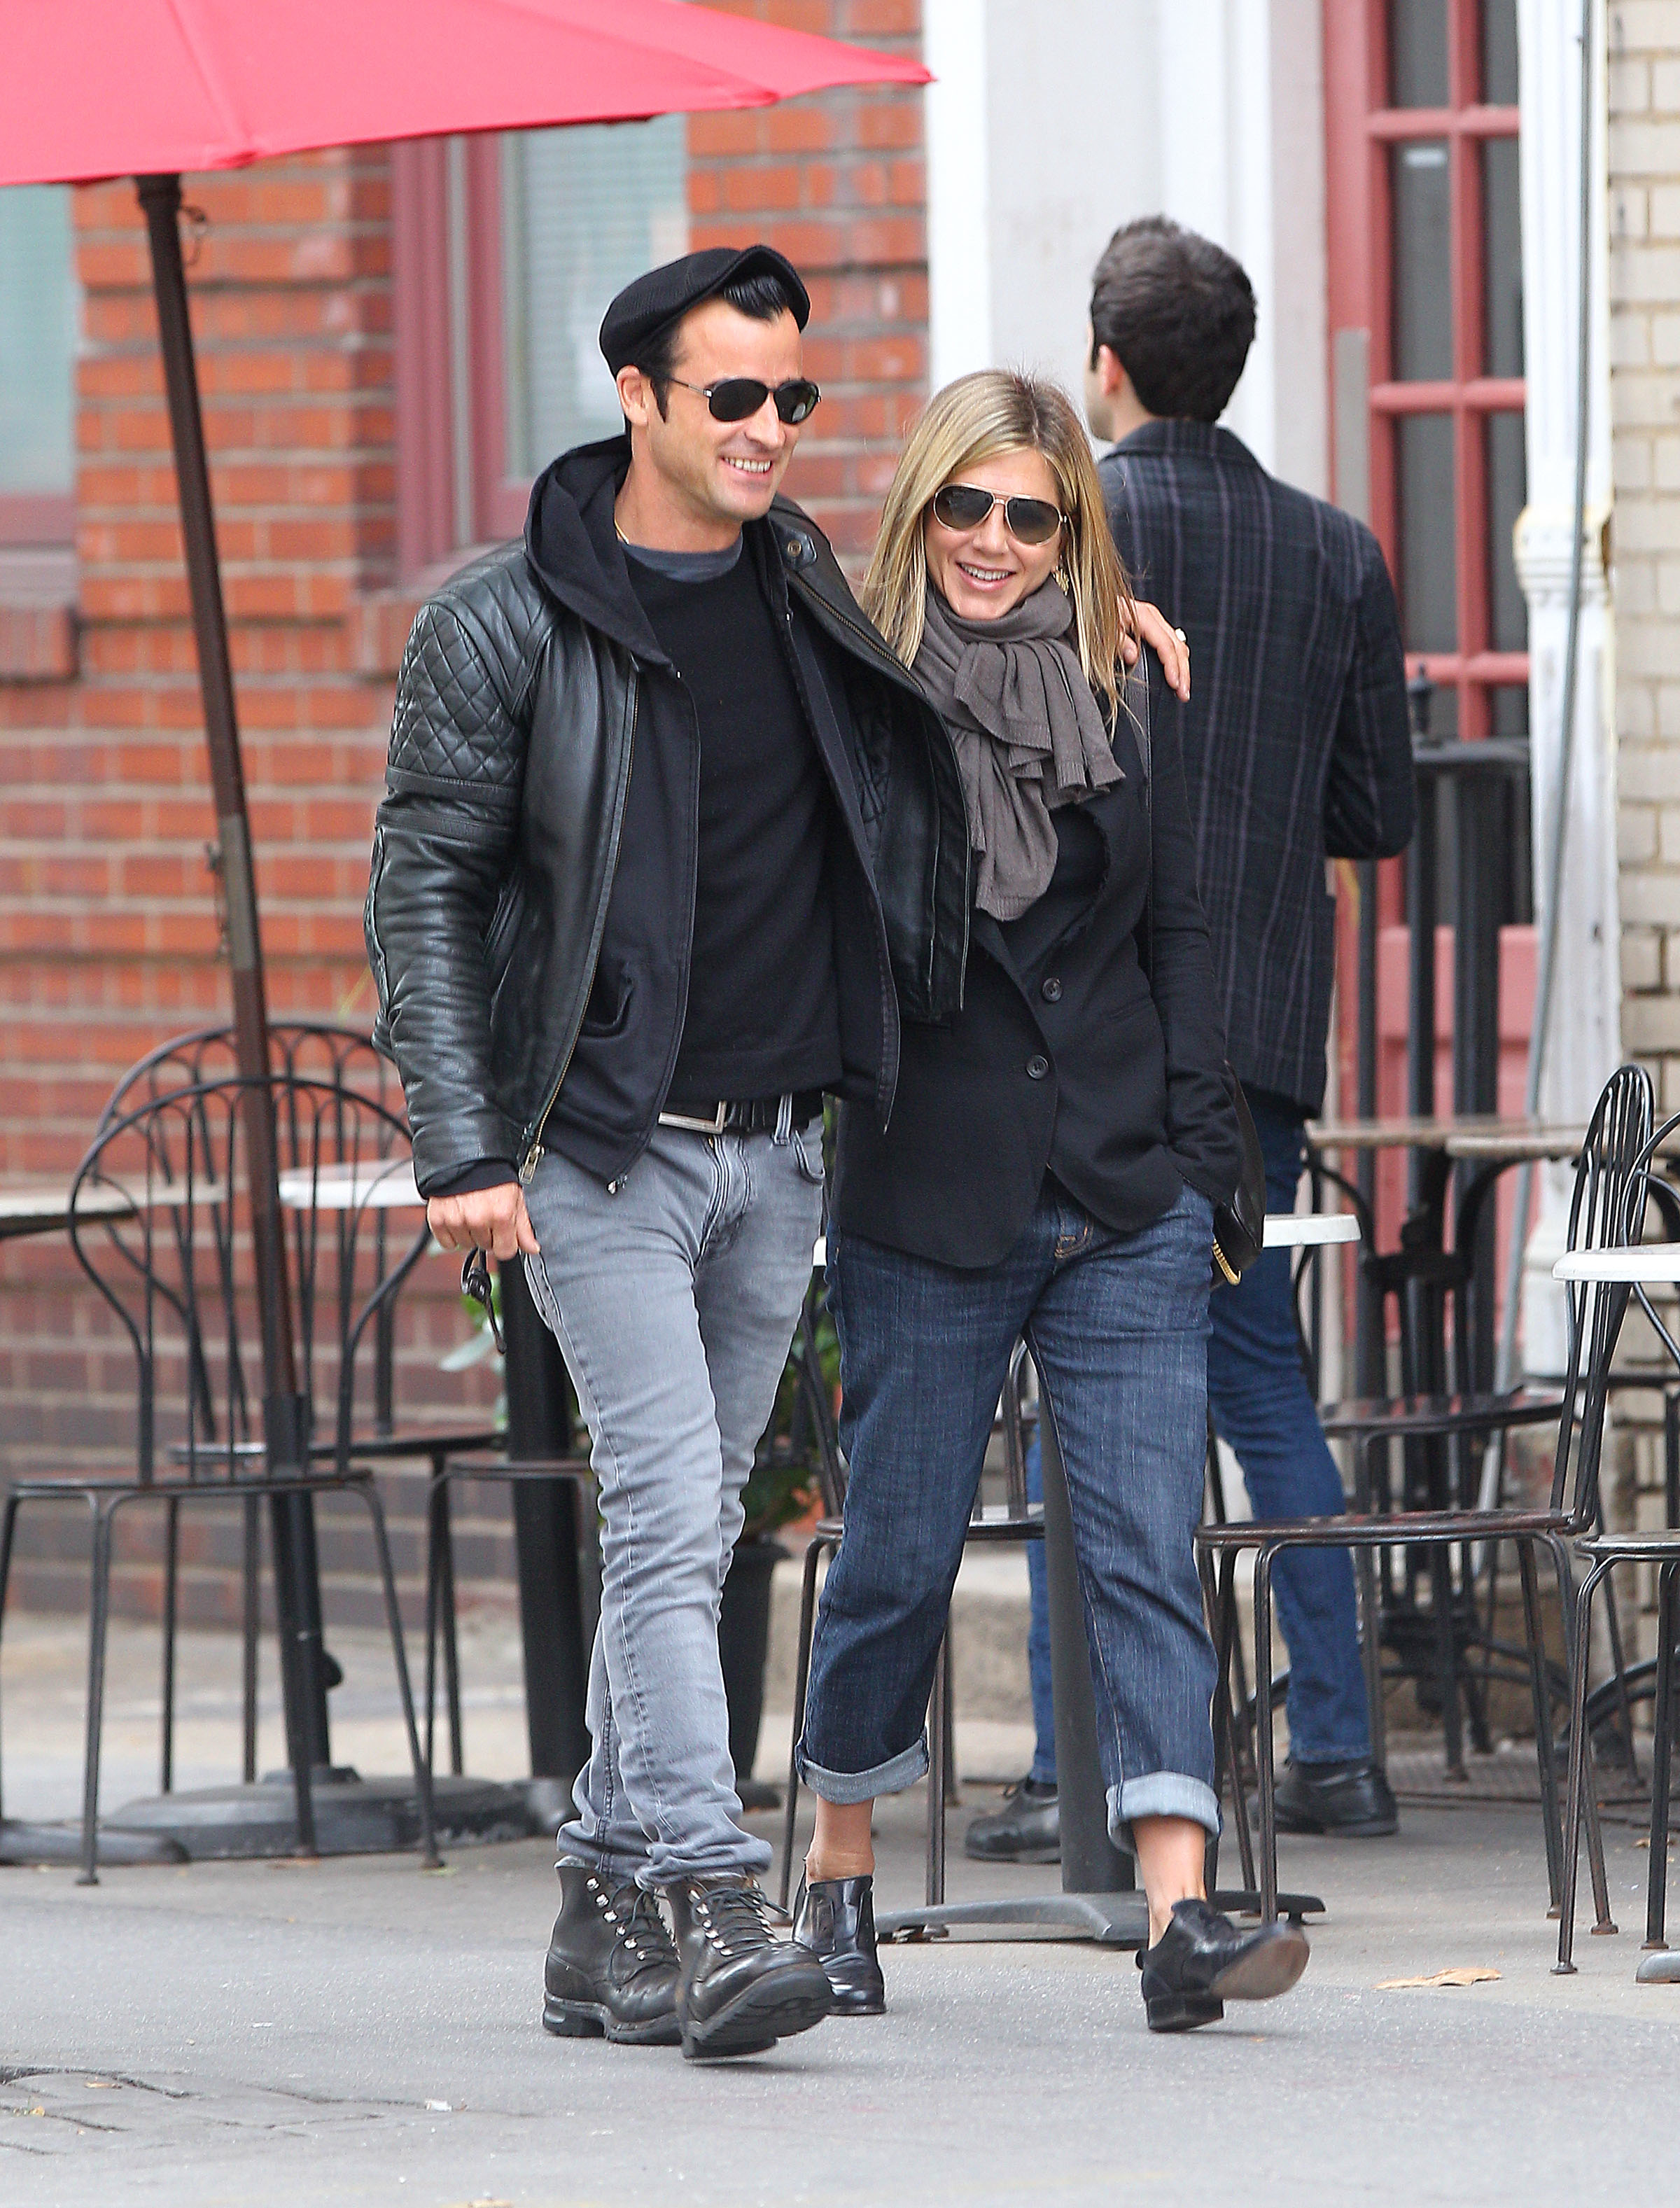 Justin Theroux Jennifer Aniston combat boots black style Esquire uniform NY